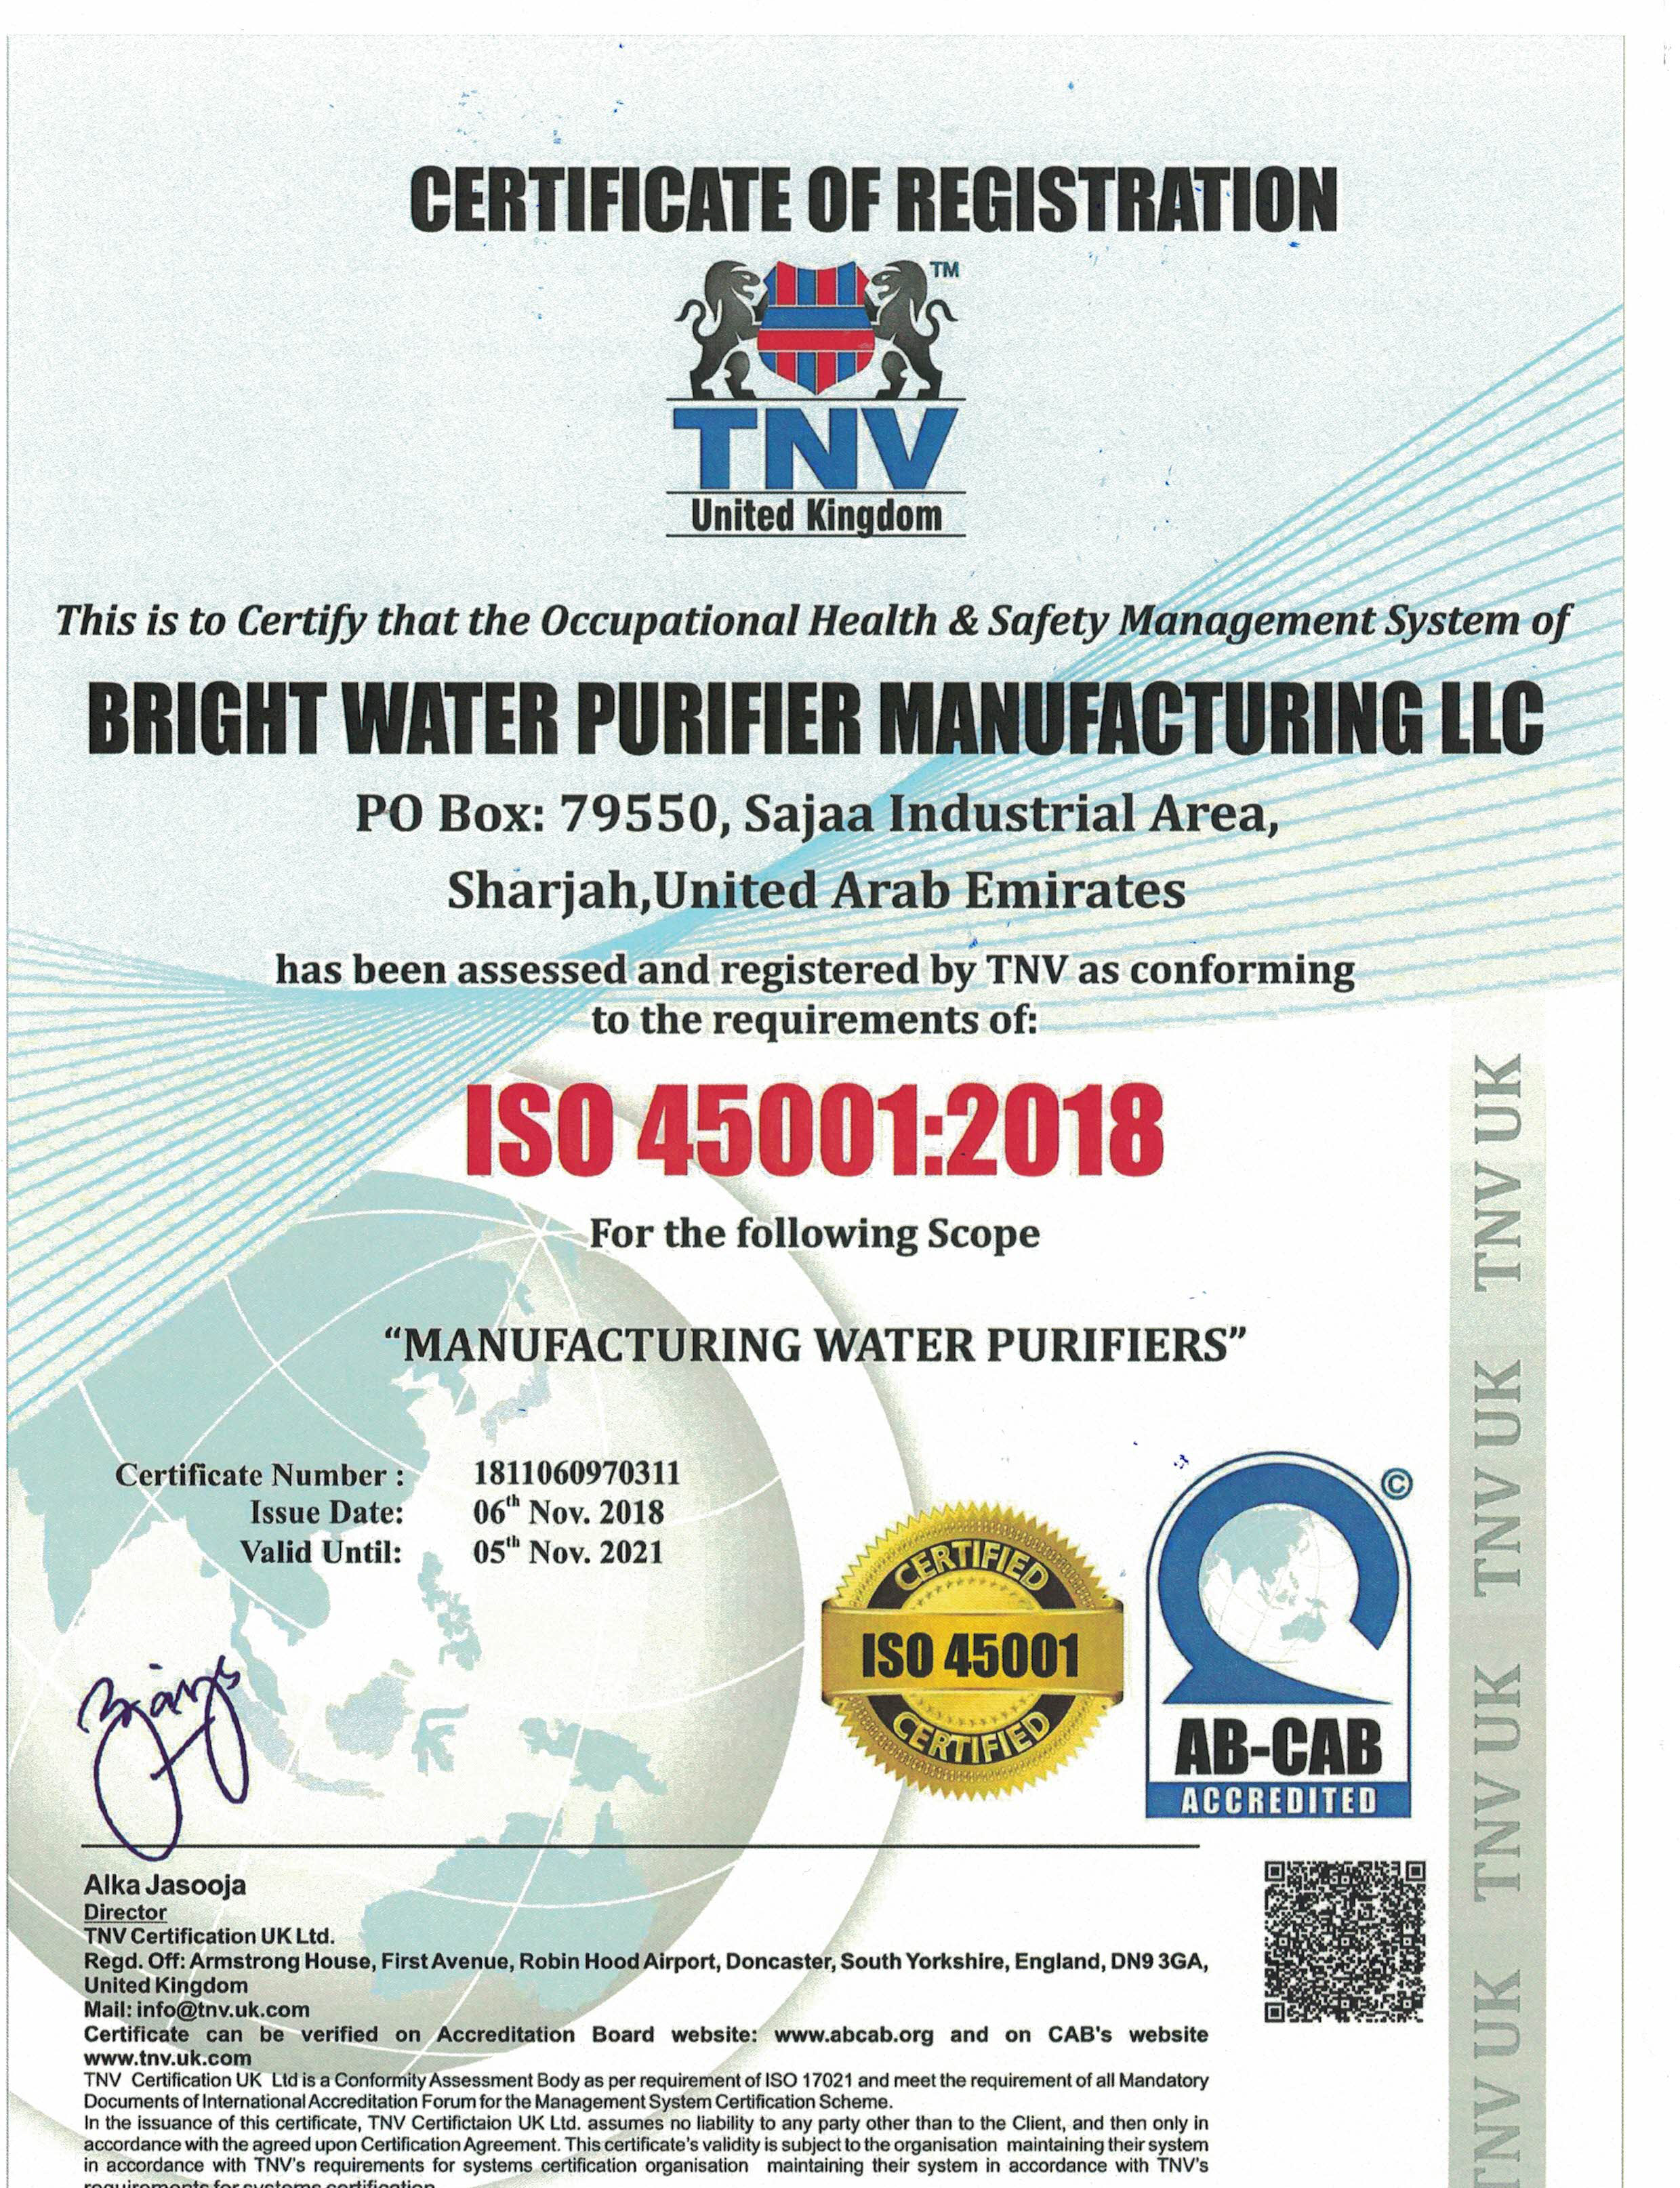 BRIGHT WATER PURIFIER MANUFACTURING LLC